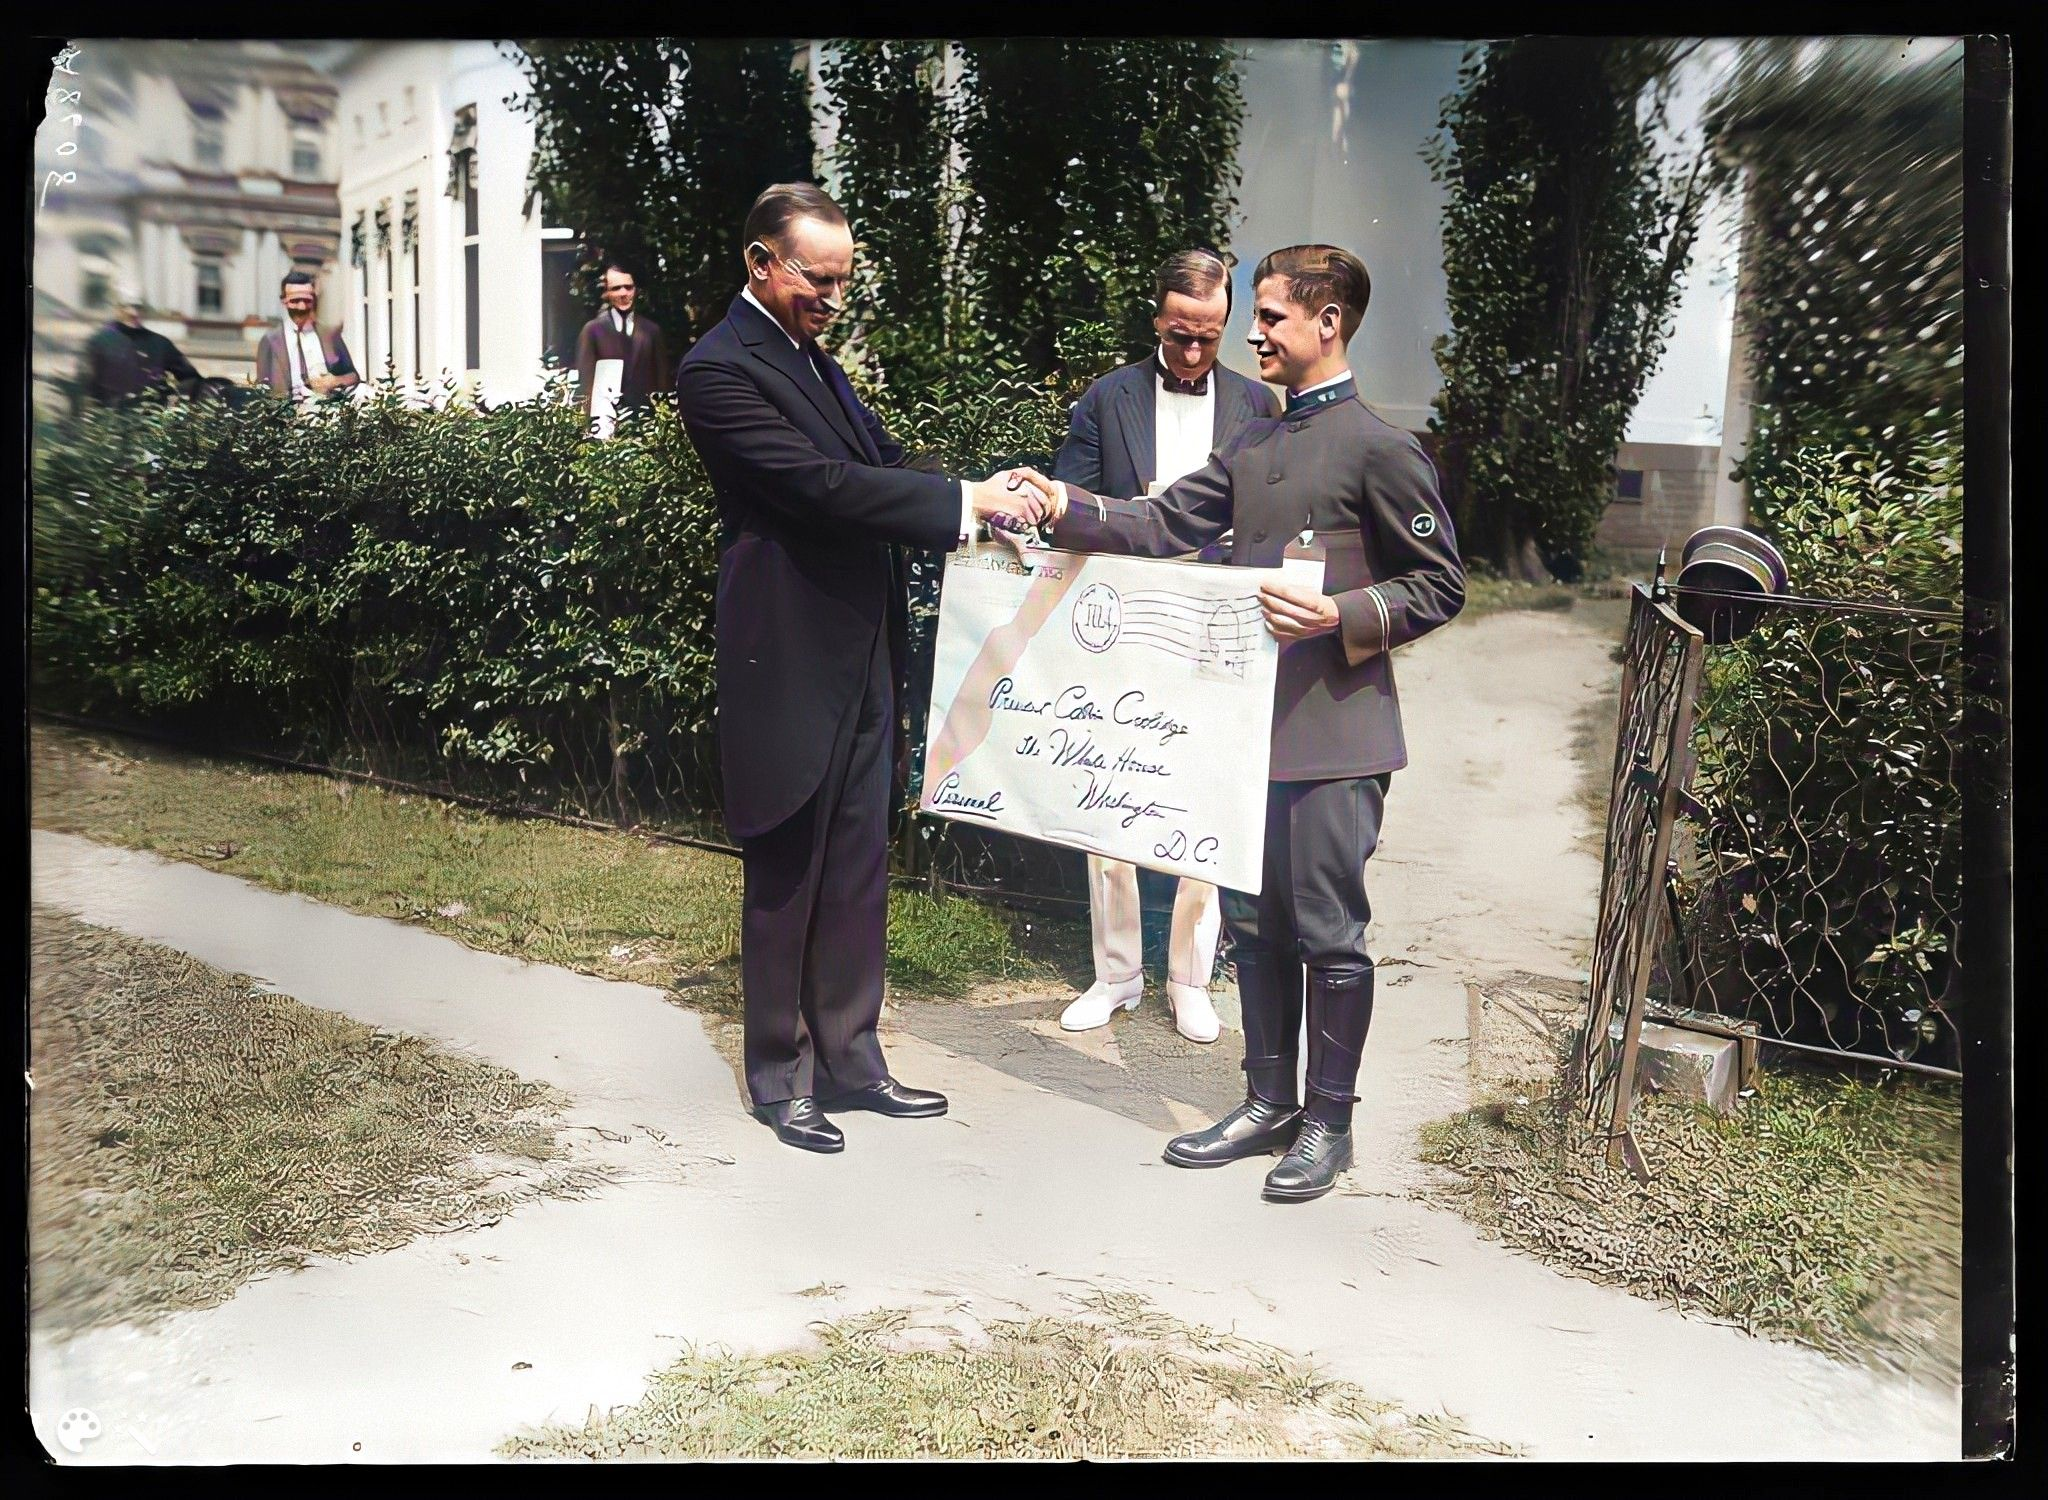 """President Coolidge receives a giant envelope with """"birthday greetings from 20,000 Mass citizens"""" from Louis Demontreux, Honor. Messenger of the Western Union from Boston, July 4, 1924. Courtesy of the Library of Congress"""